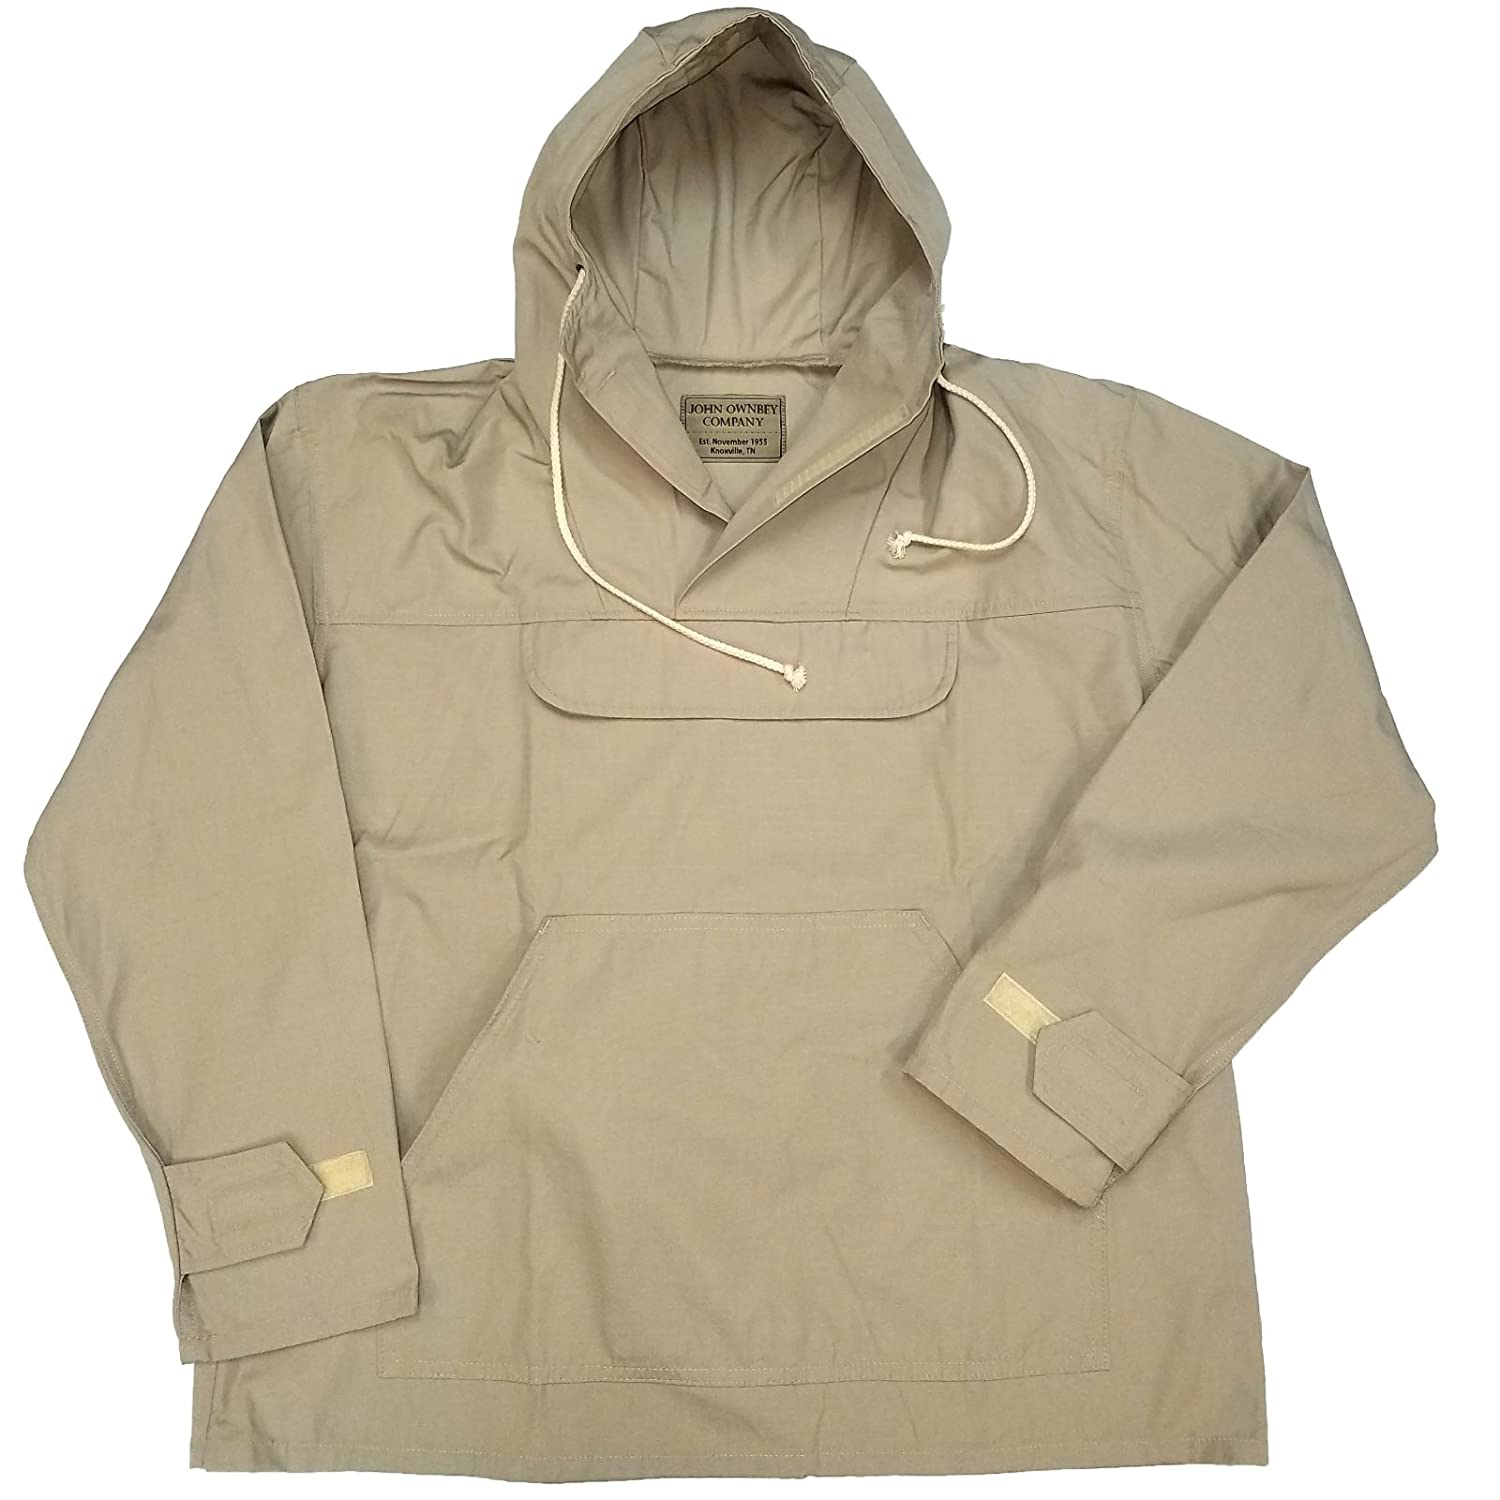 John Ownbey Company Men's Military Style Lightweight Anorak Pullover Parka